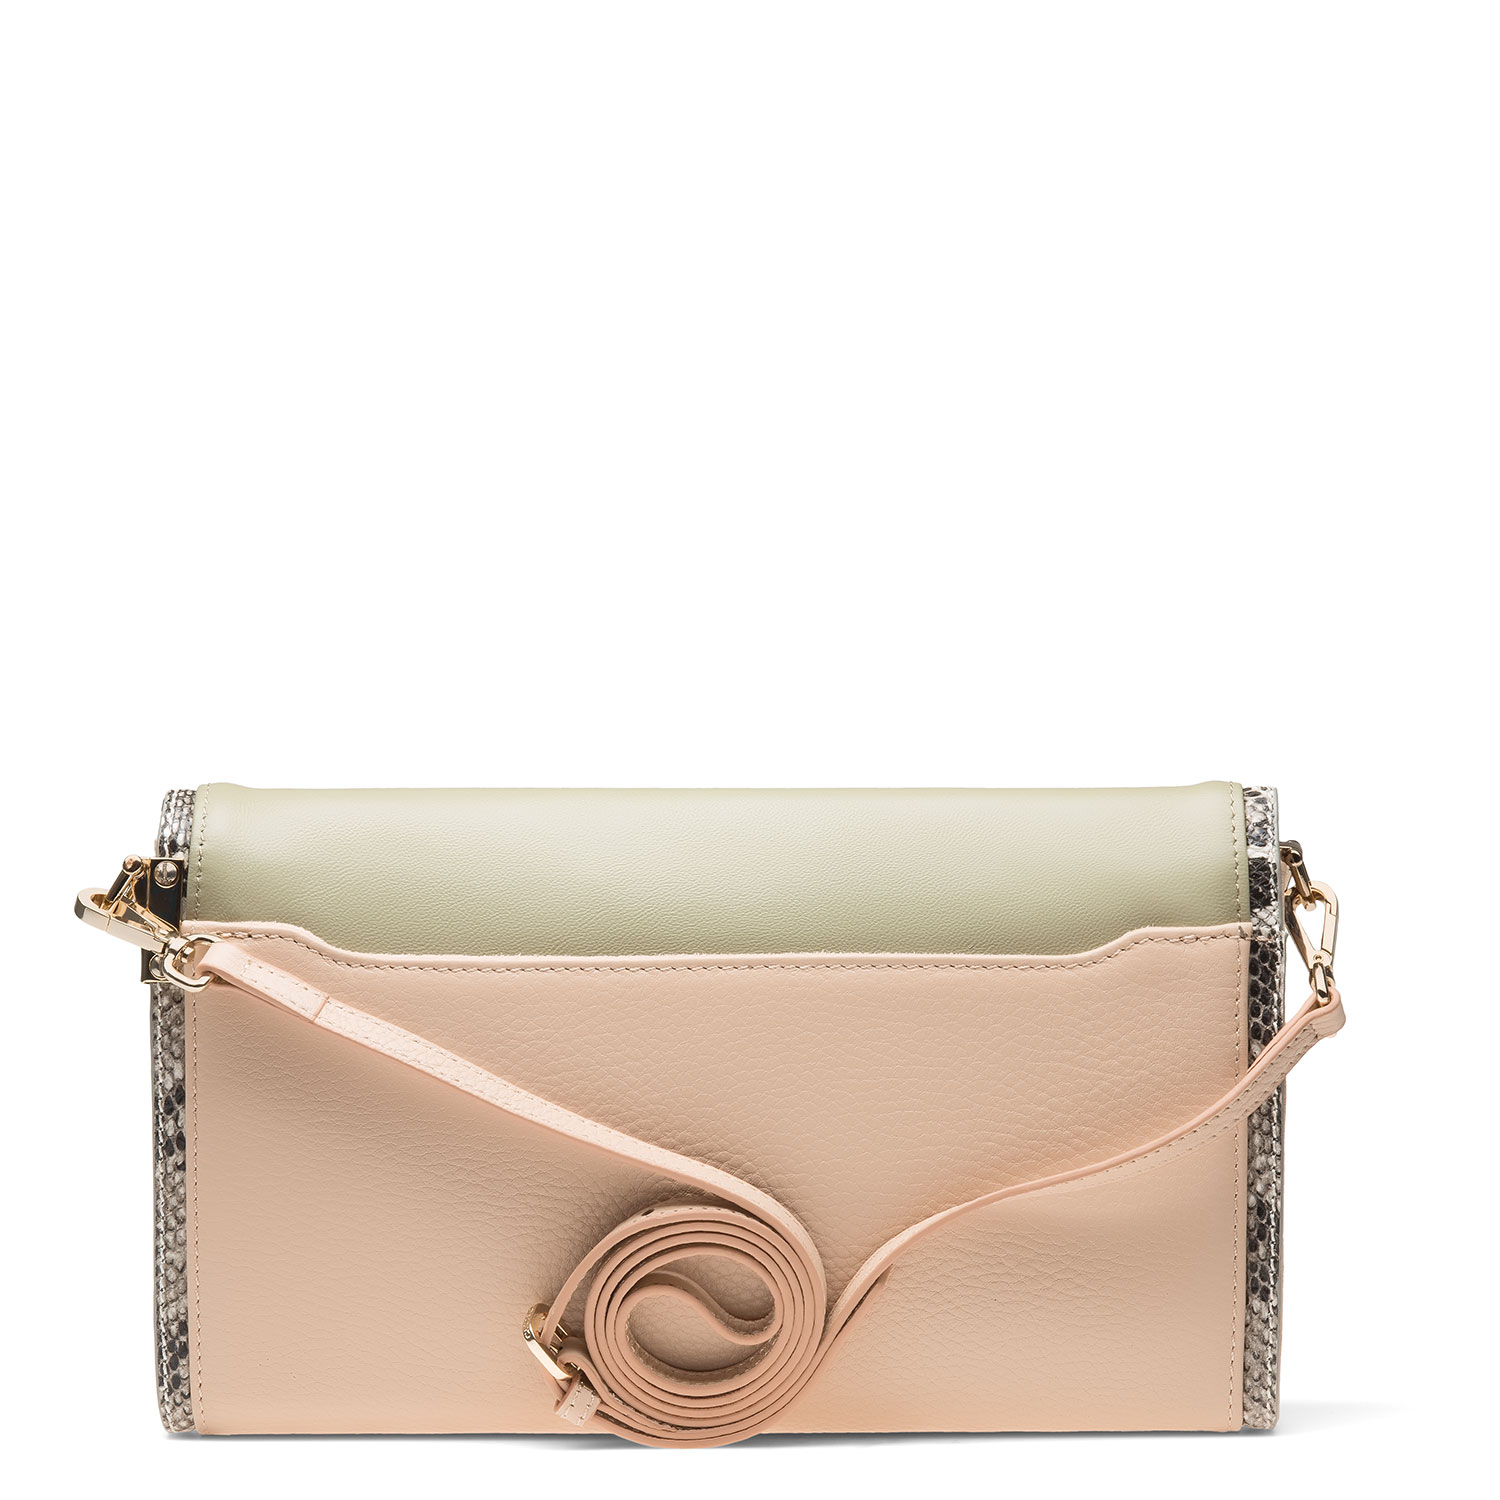 Women's bag CARLO PAZOLINI PS-N1166-26